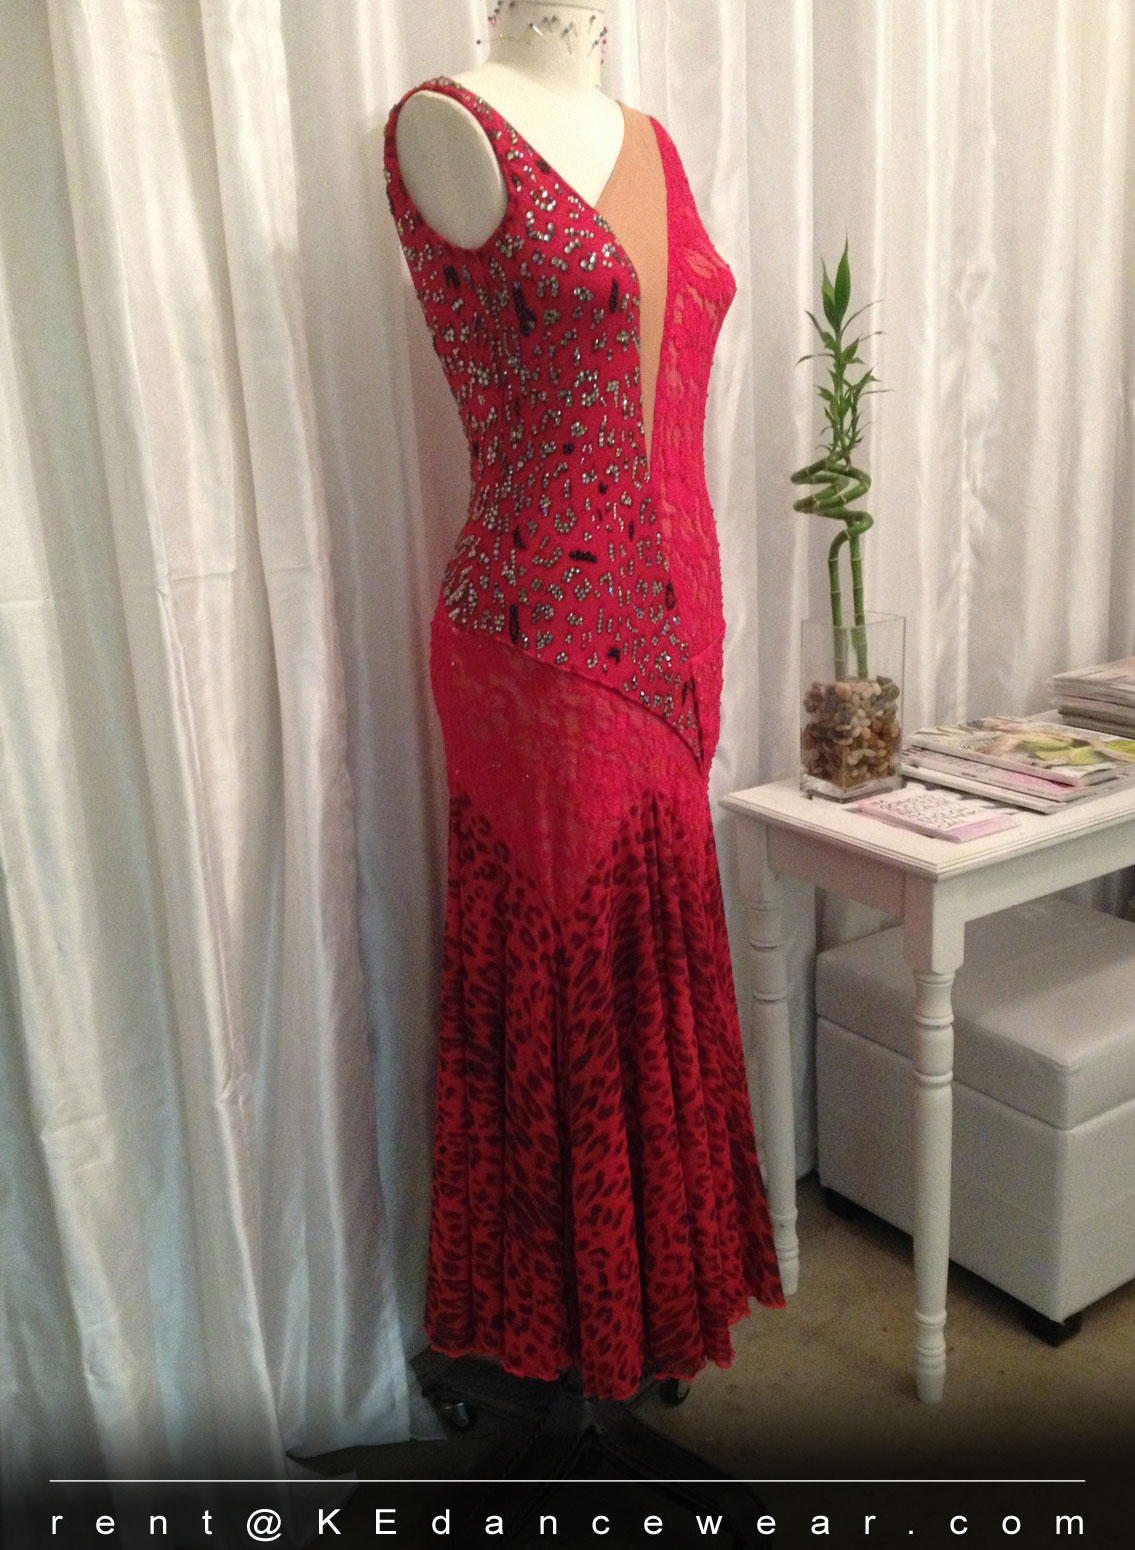 KE Dancewear | Rent Ballroom Dresses – Ballroom Dress For Rent ...